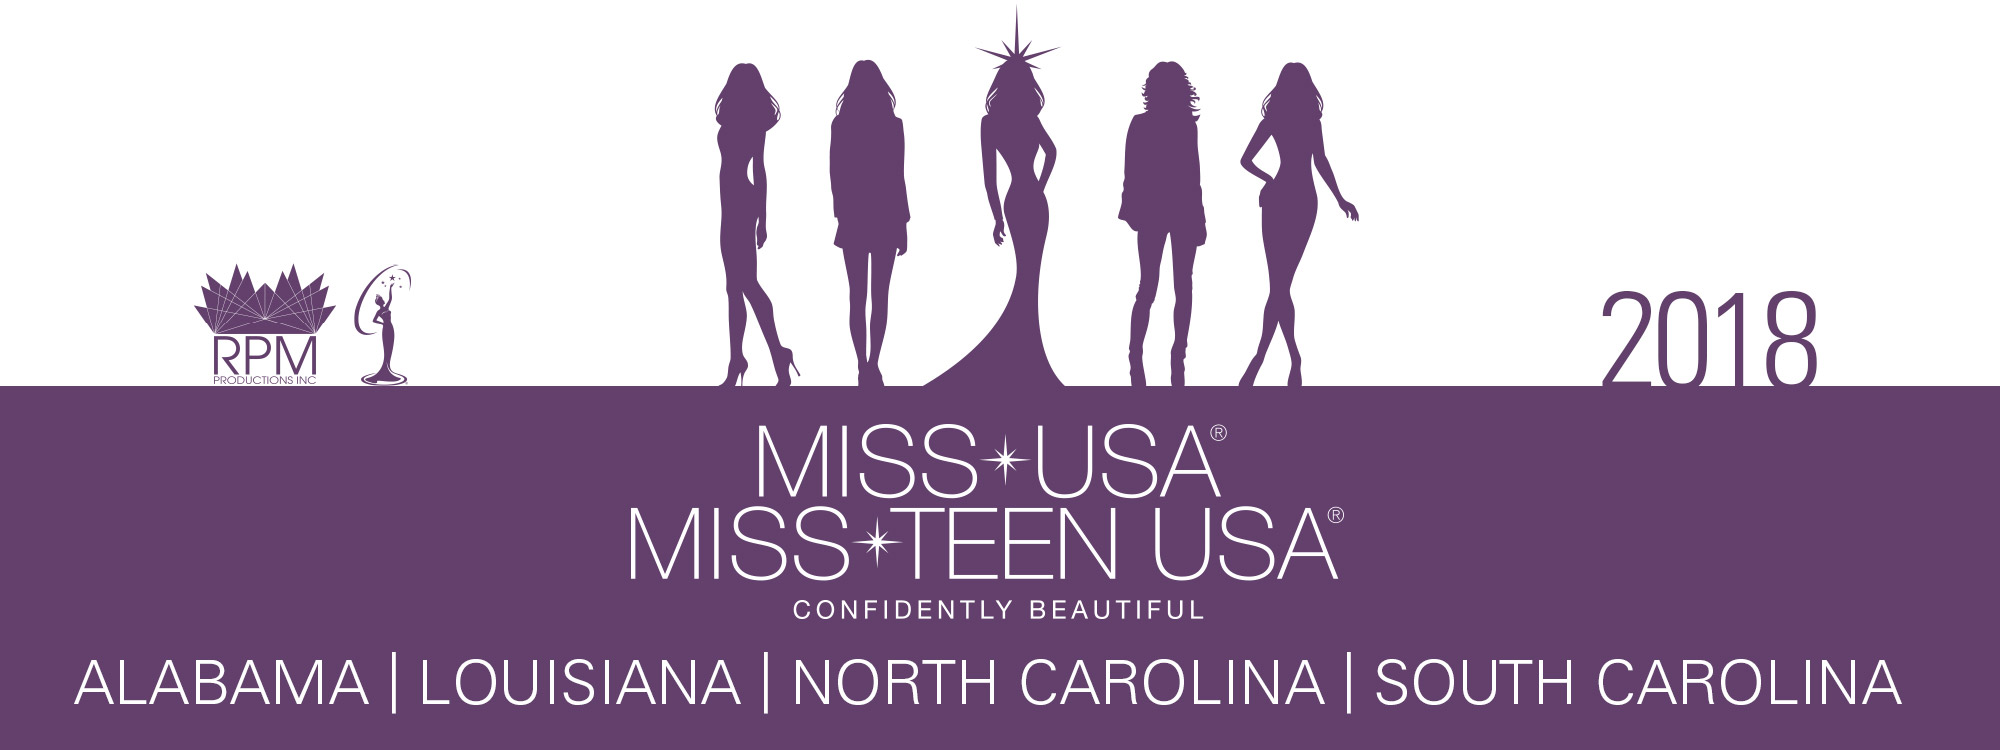 Miss Usa Logo and Image